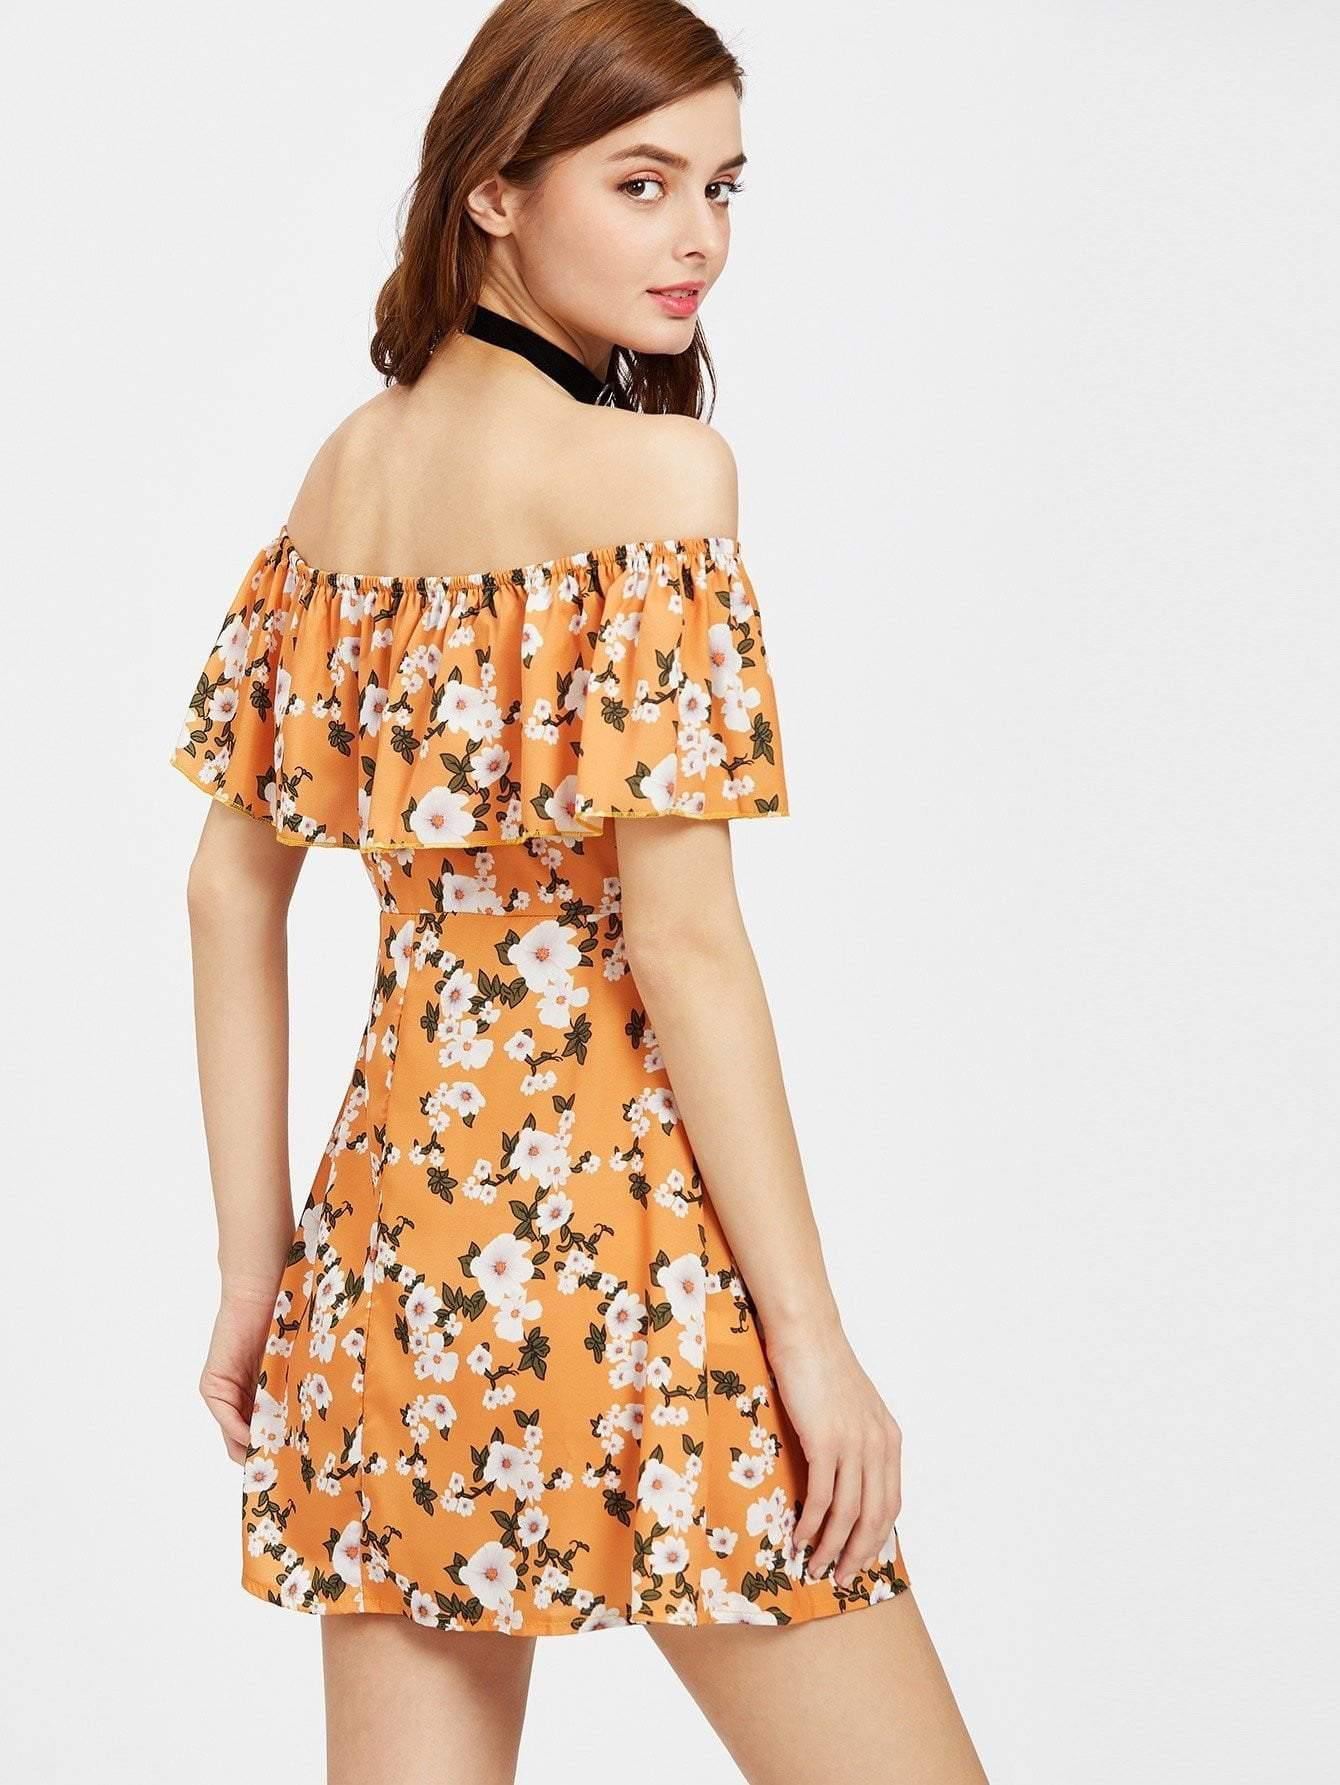 Flounce Layered Neckline Calico Print Button Front Dress - Dresses - Zooomberg - Zoomberg